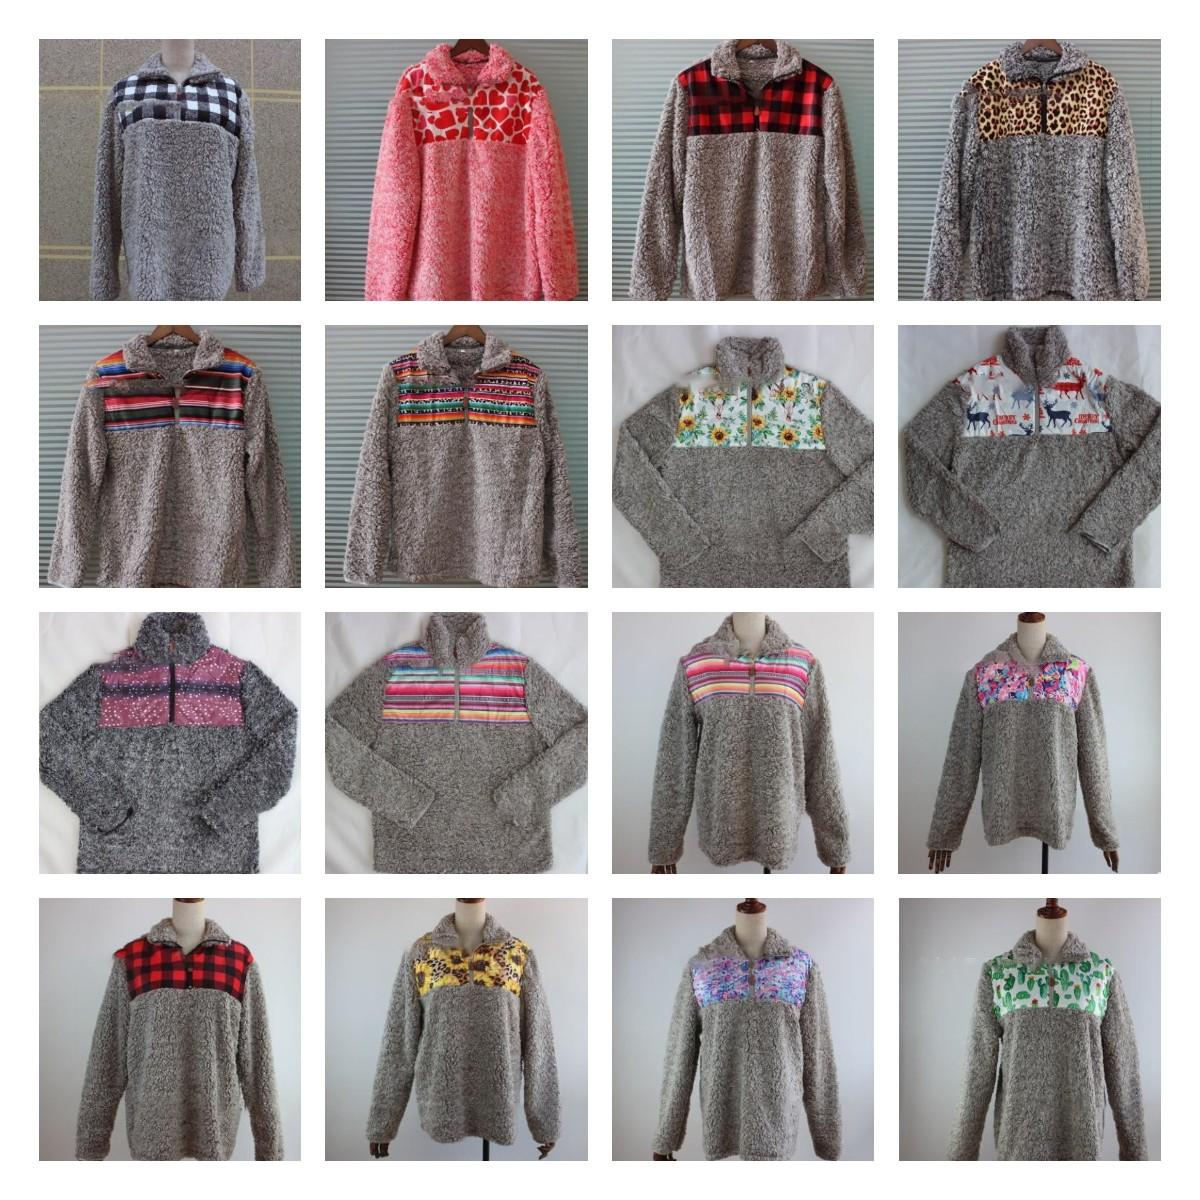 21 conception Sherpa hoodies Hiver Femmes Sherpa Doux Pull Pull Outwear Manteau Pulls Chaud Tops Patchwork Chandails LJJK1836